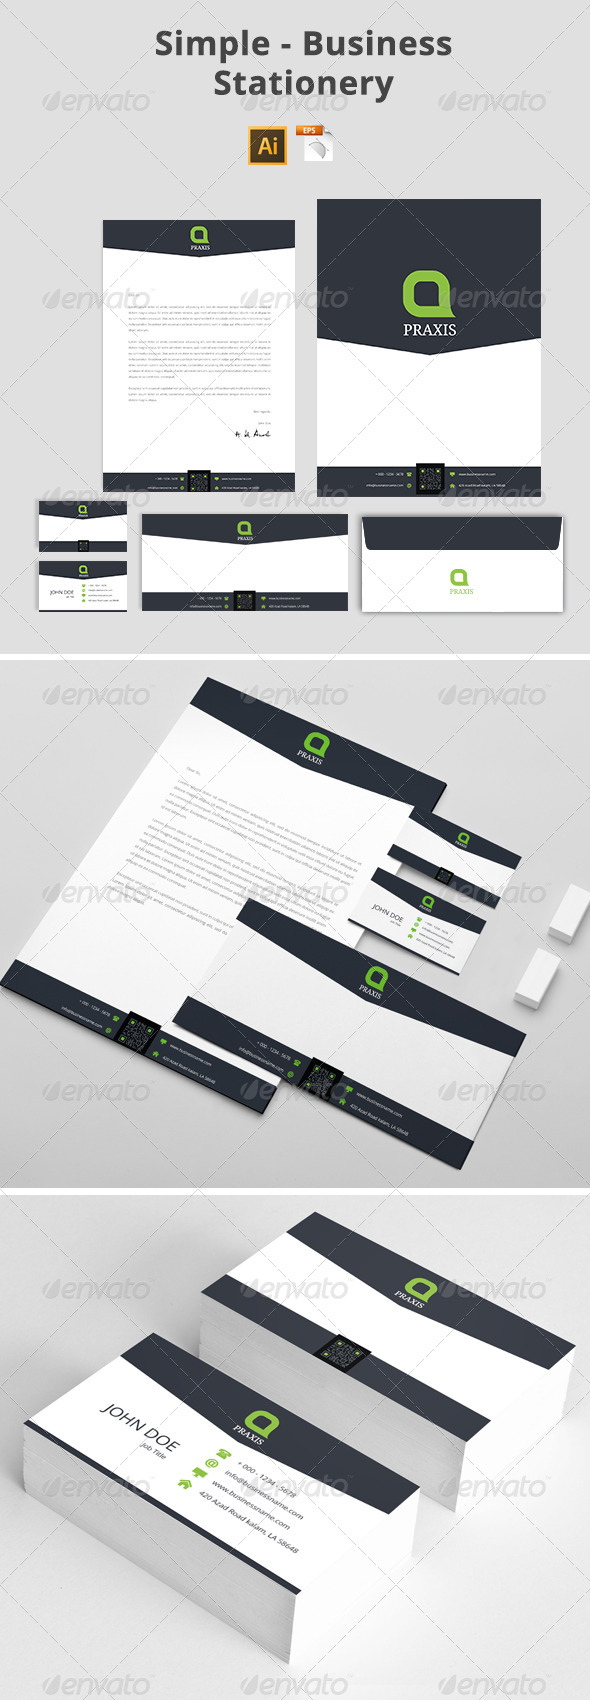 GraphicRiver Simple Business Stationery 8048234